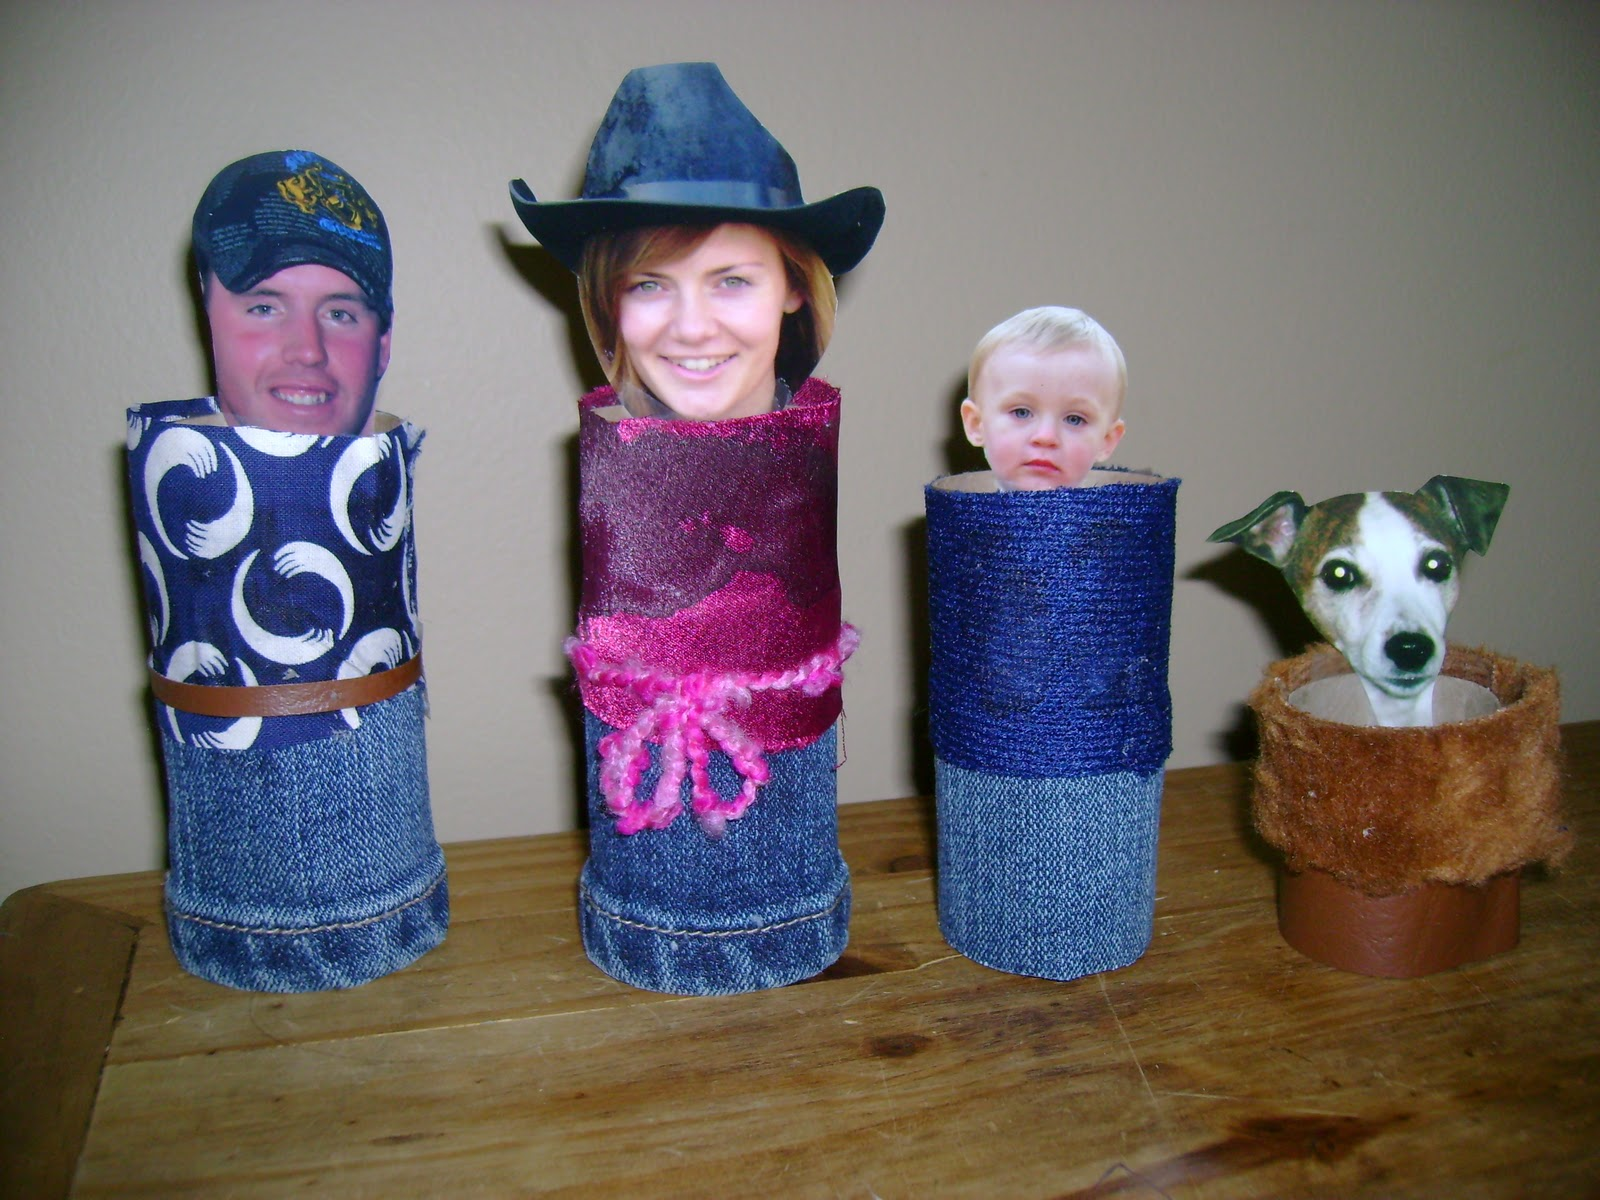 Found My Feet: Toilet Paper Roll Family Craft